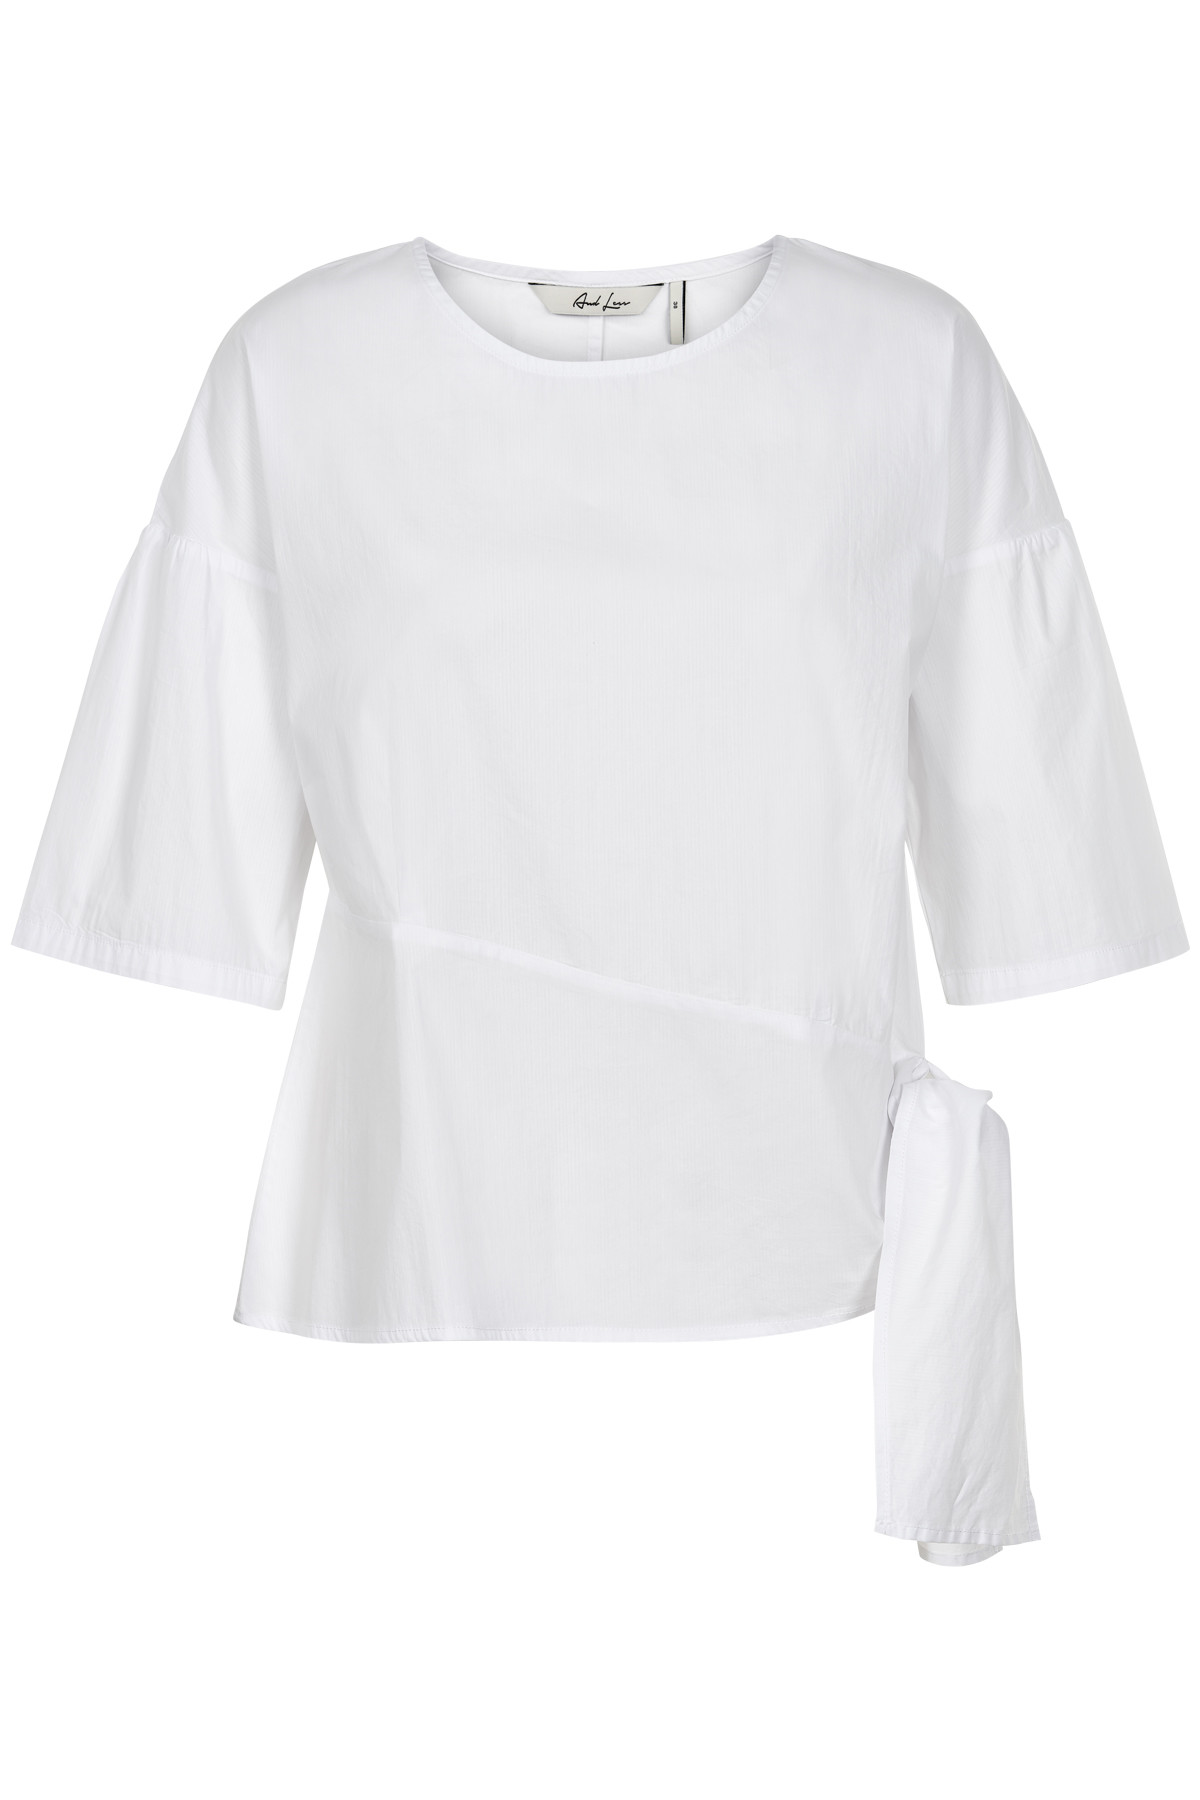 Image of   AND LESS LOREANE BLUSE 5119005 (Brilliant White, 38)